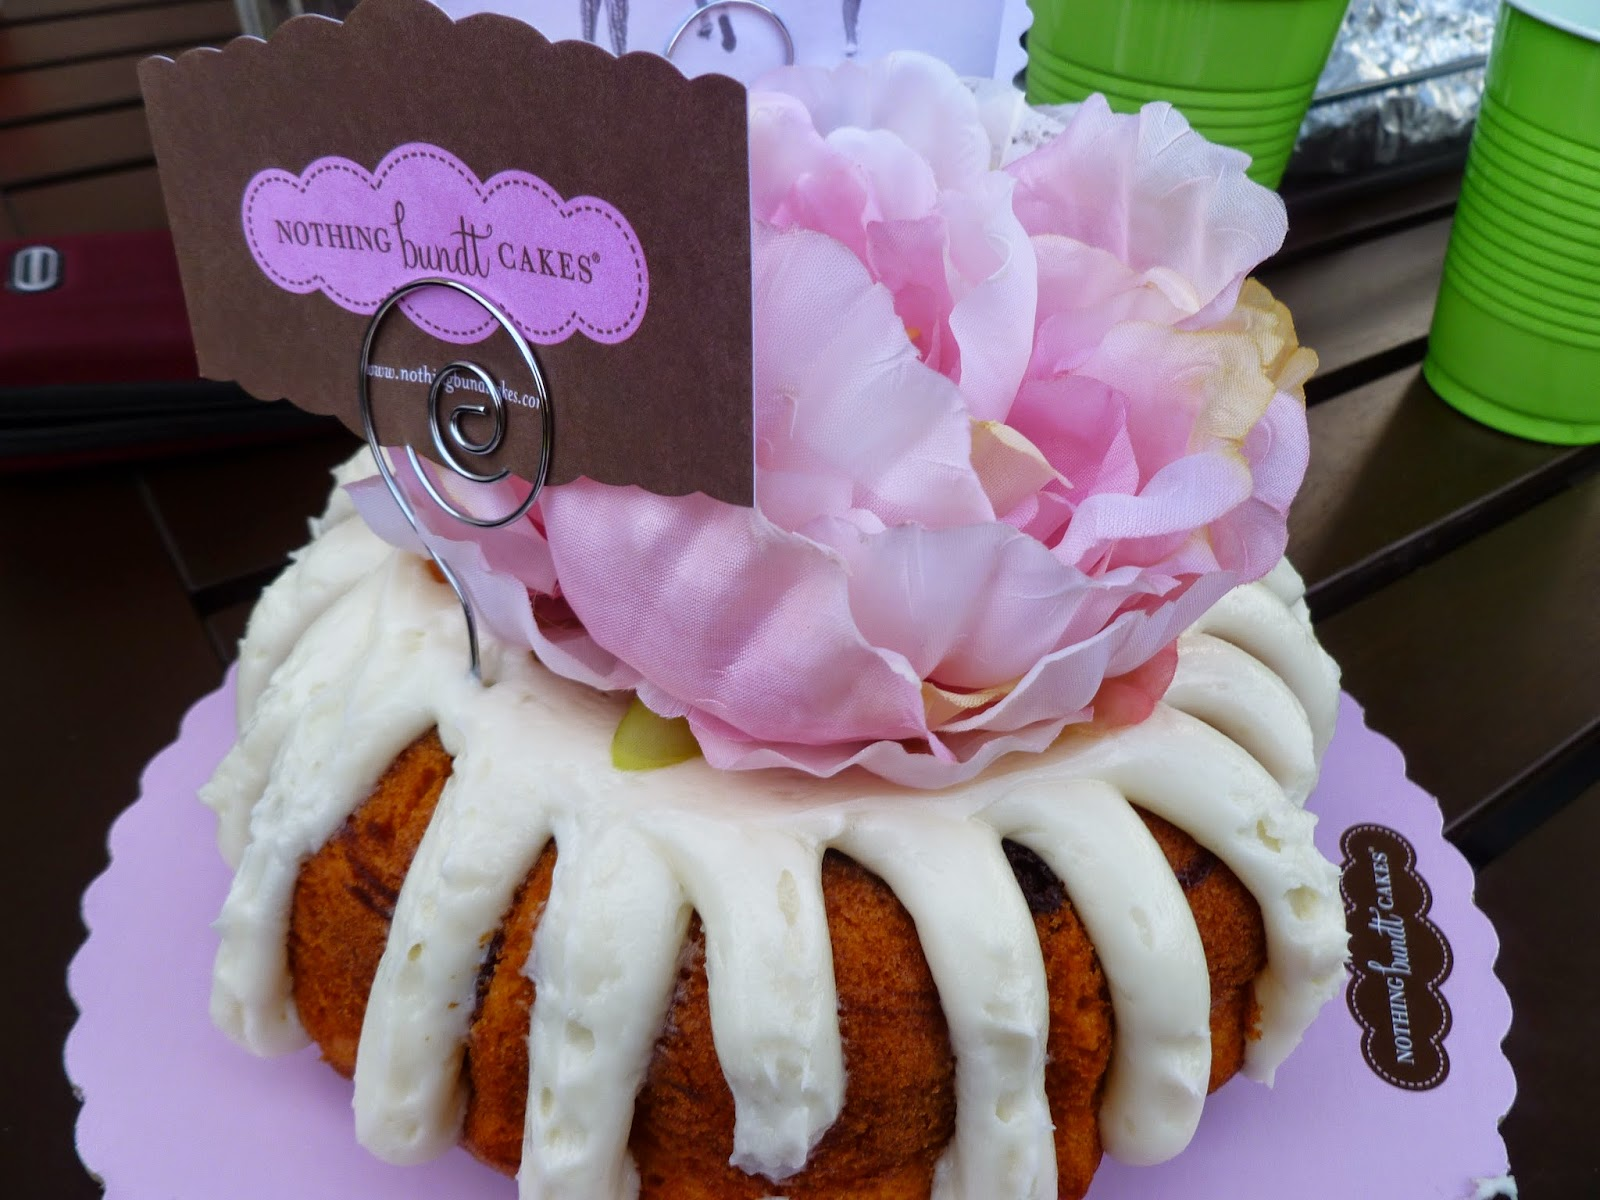 The Pastry Chefs Baking Bakery Review Nothing Bundt Cakes